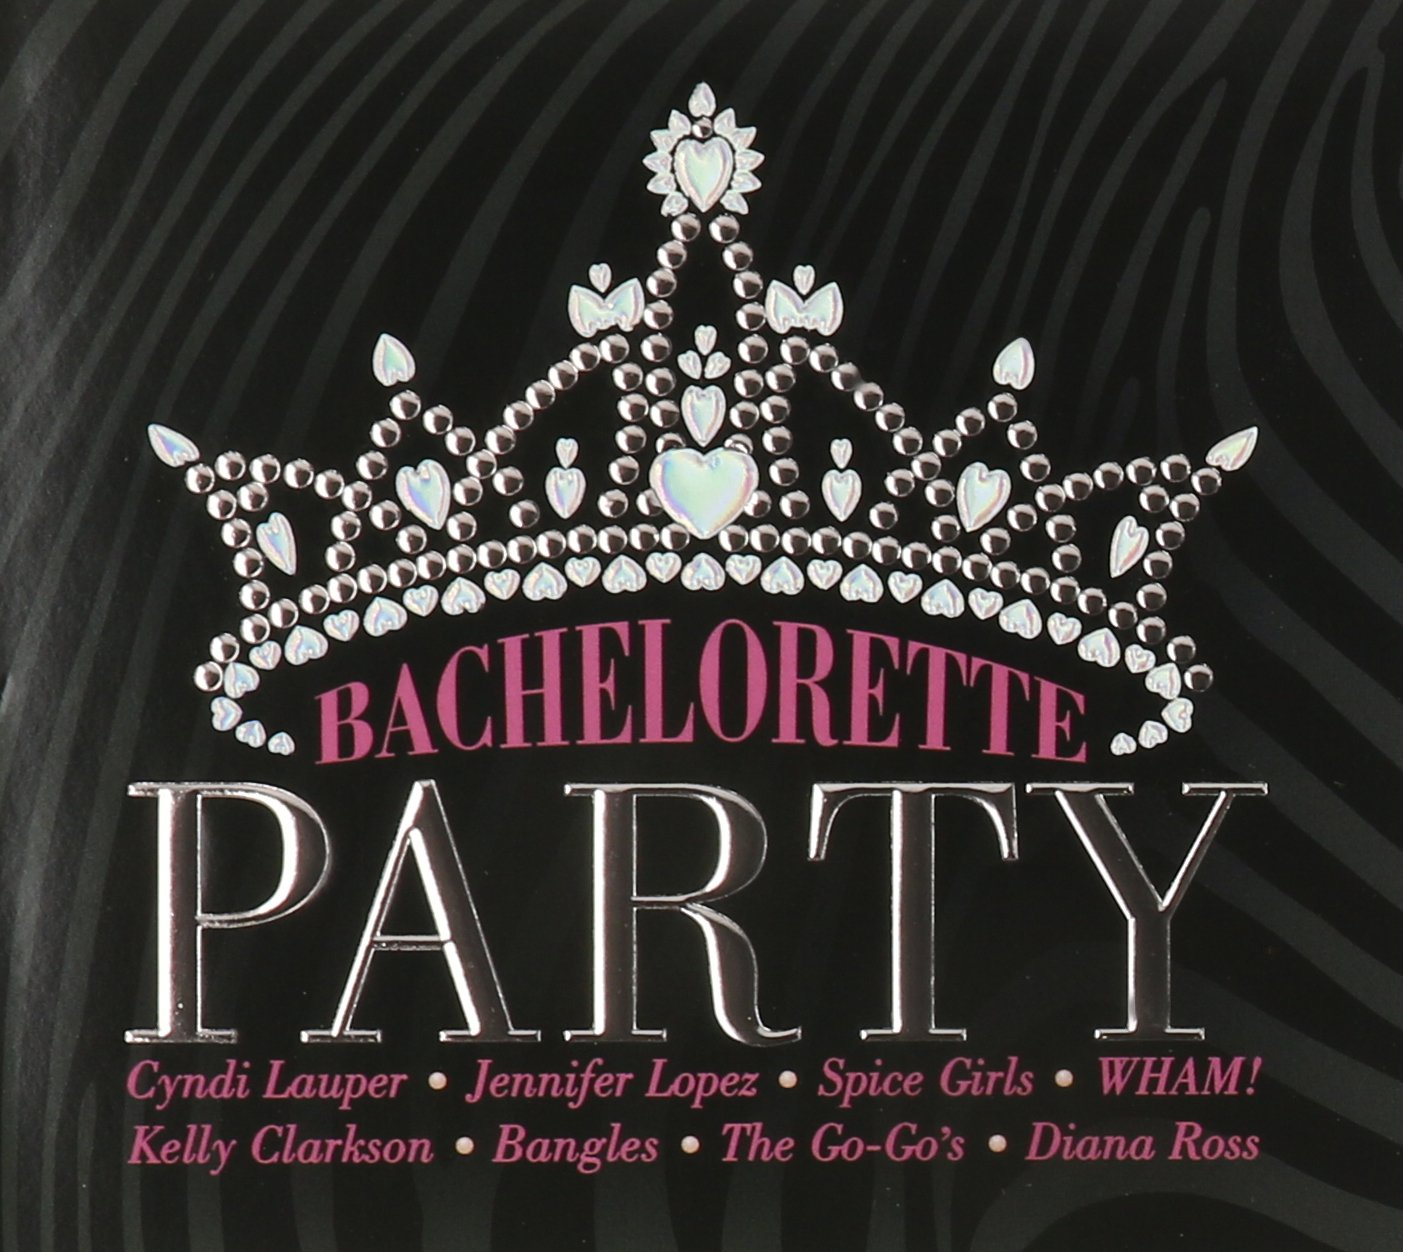 Bachelorette Party by Somerset